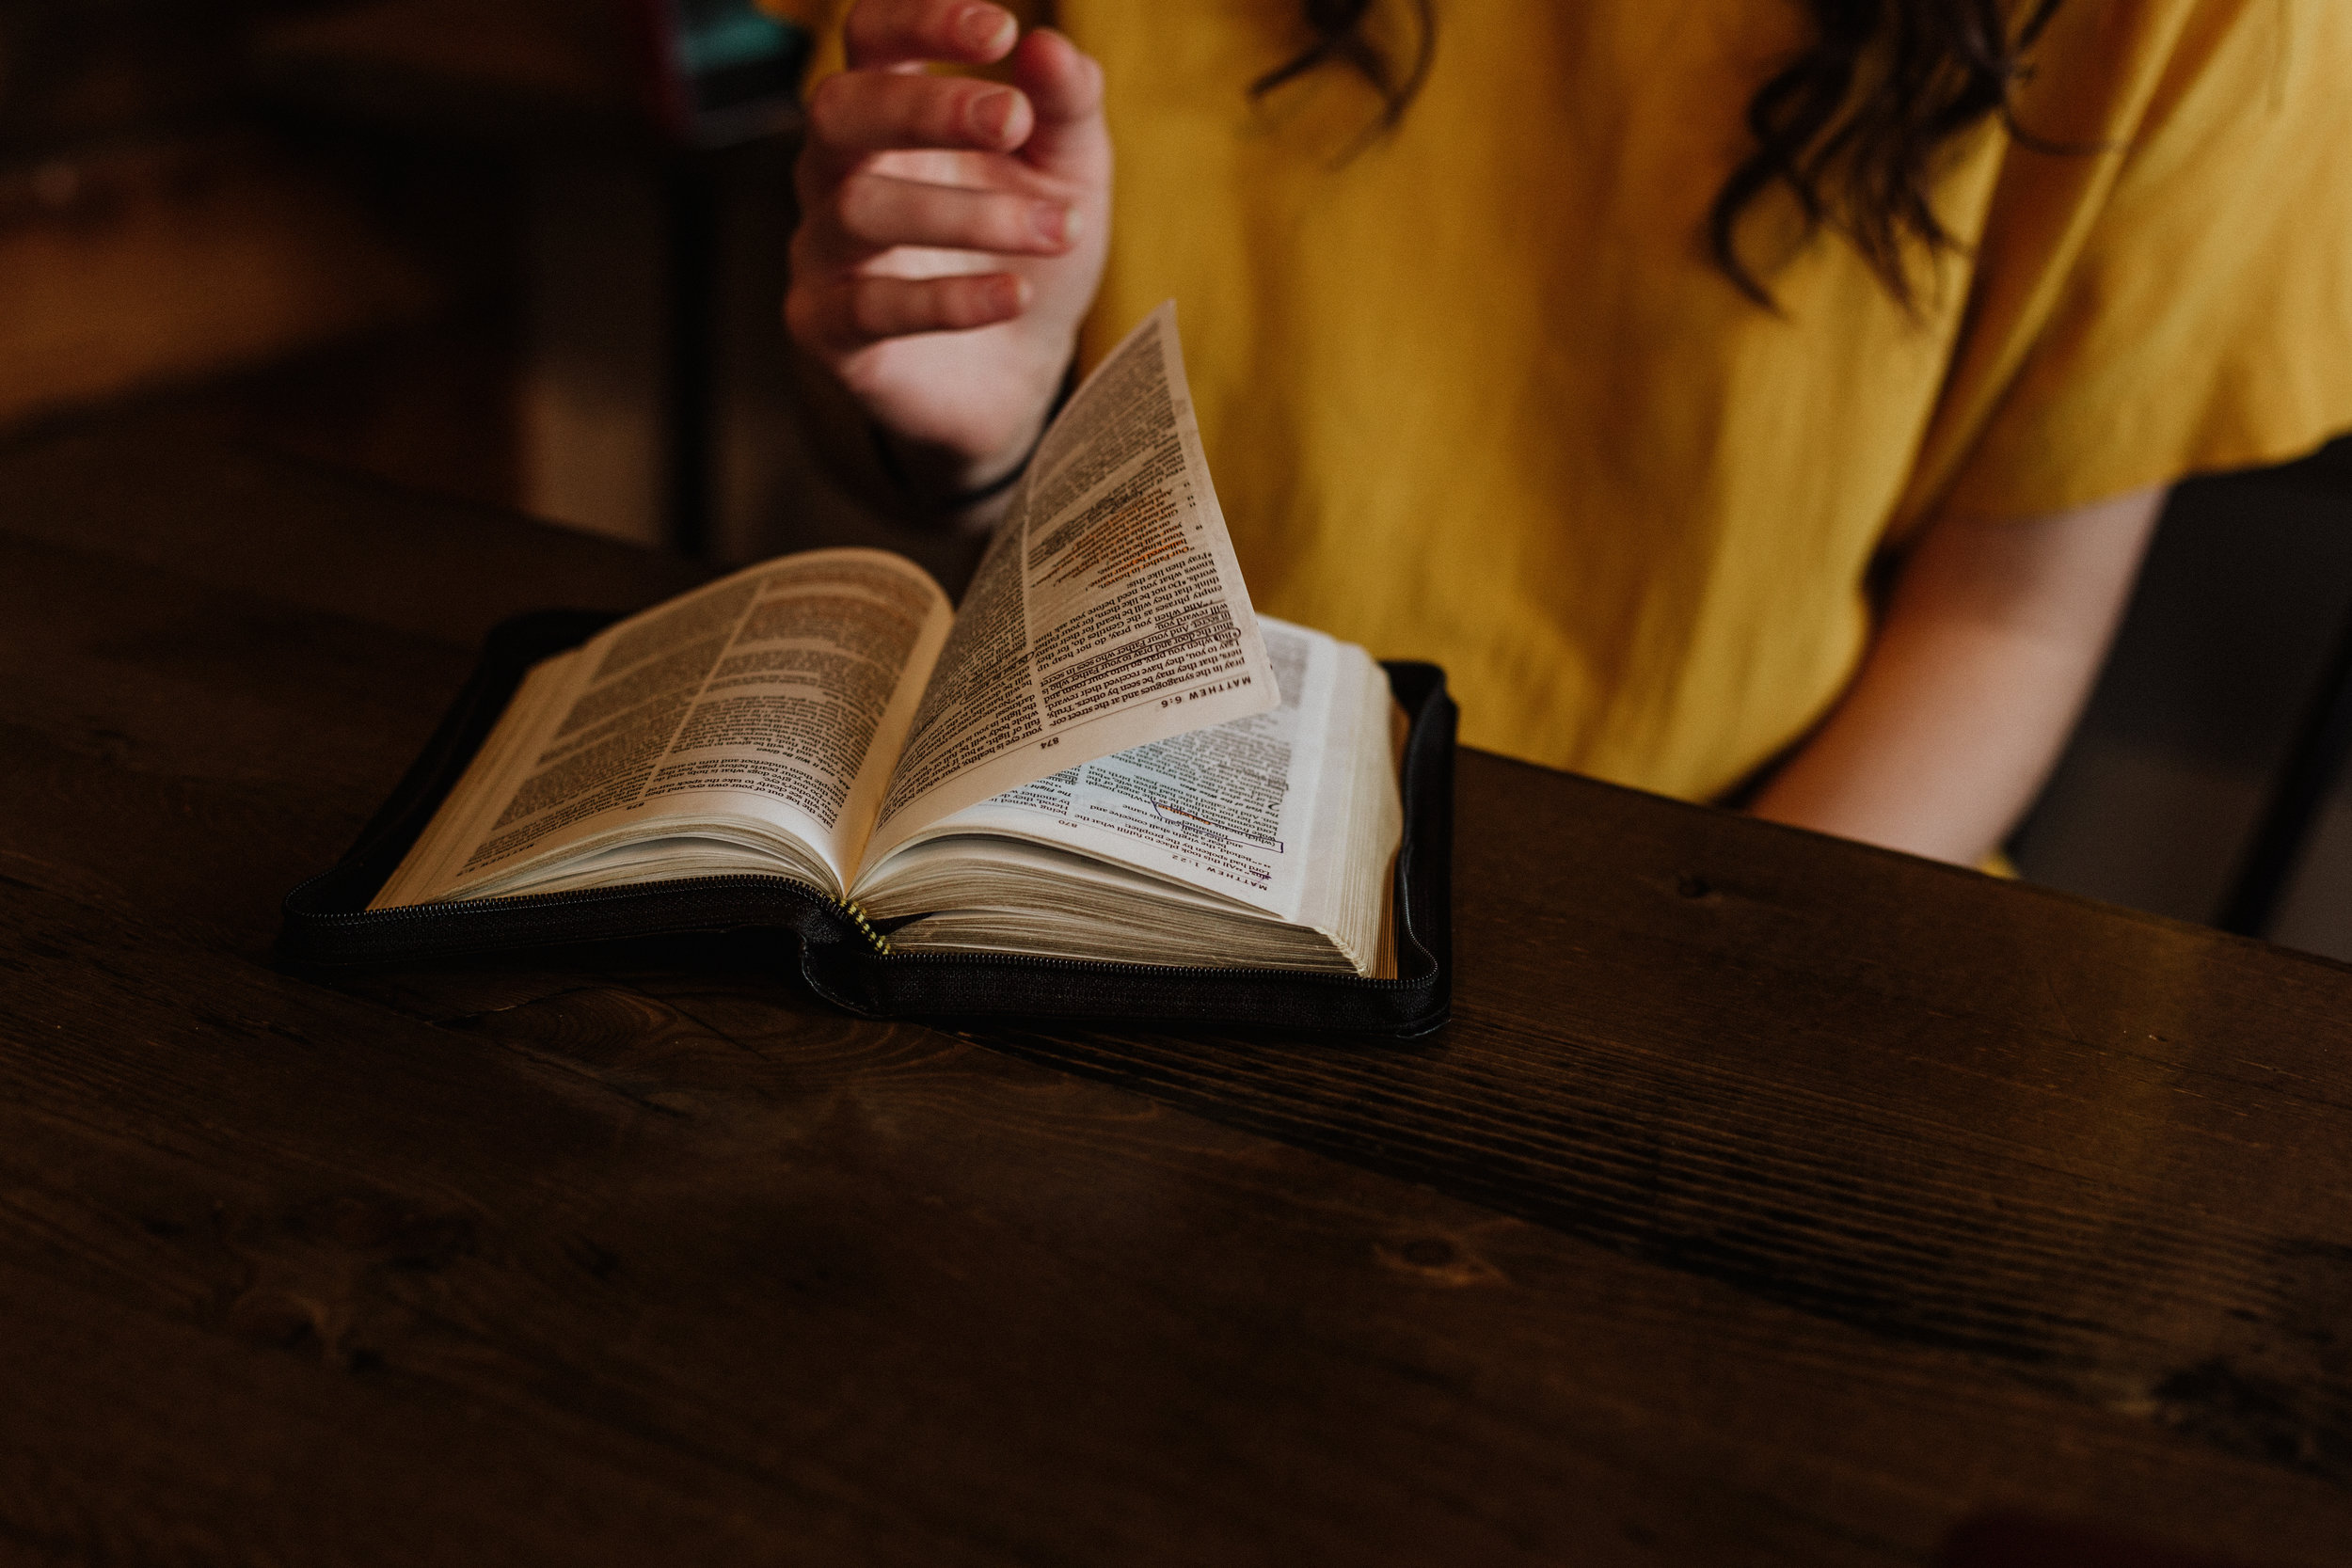 Teenagers and the Bible